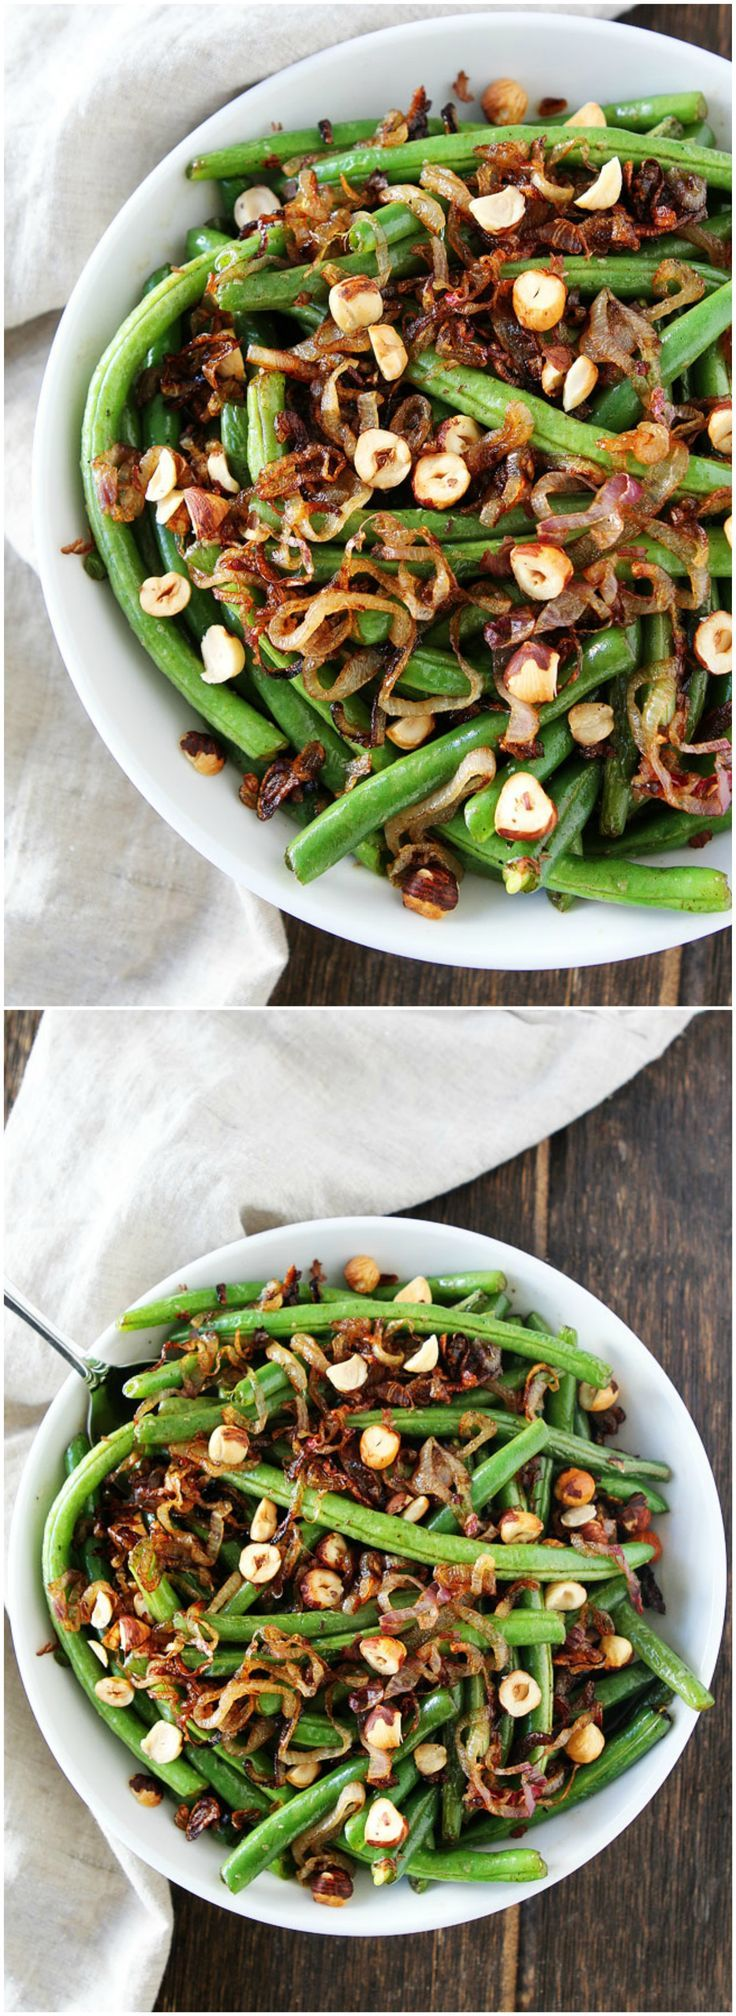 Green Beans with Brown Butter, Crispy Shallots, and Hazelnuts Recipe on twopeasandtheirpod.com This easy vegetable side dish goes great with any meal.